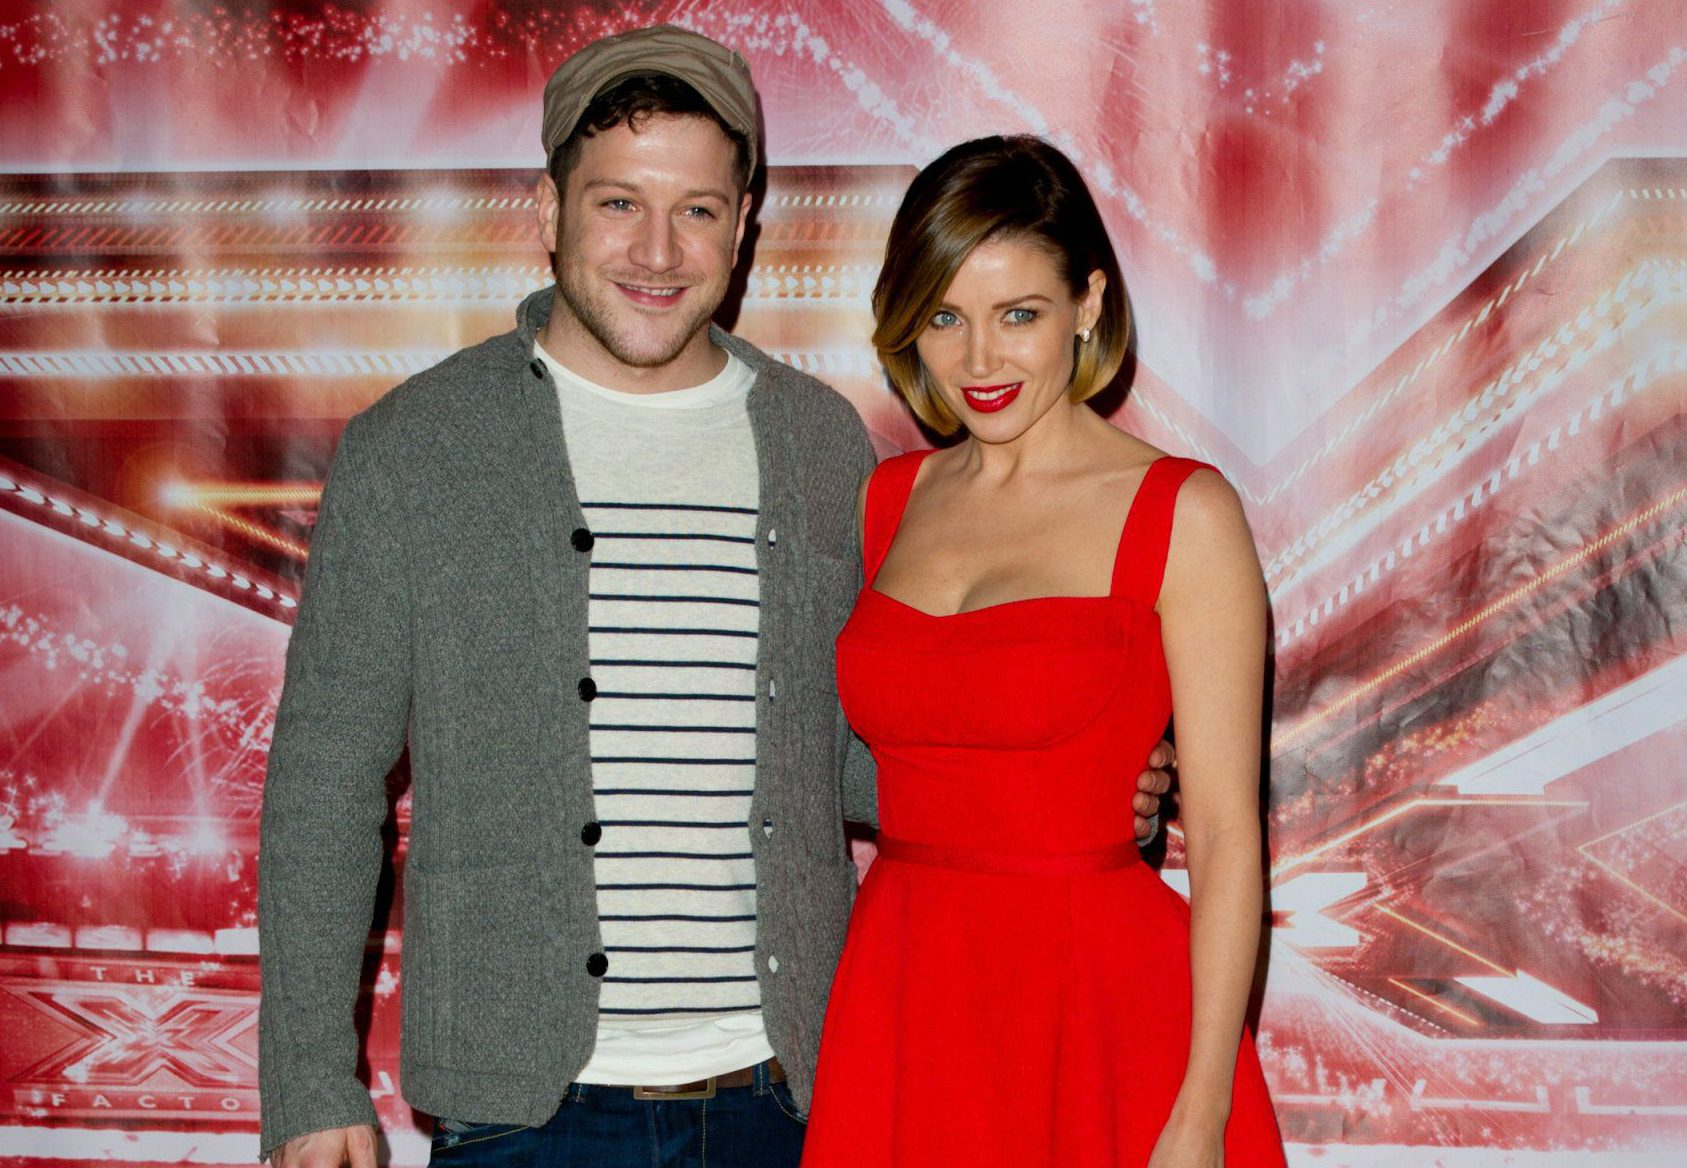 Matt Cardle admits he lied about being a painter and decorator when he auditioned for The X Factor